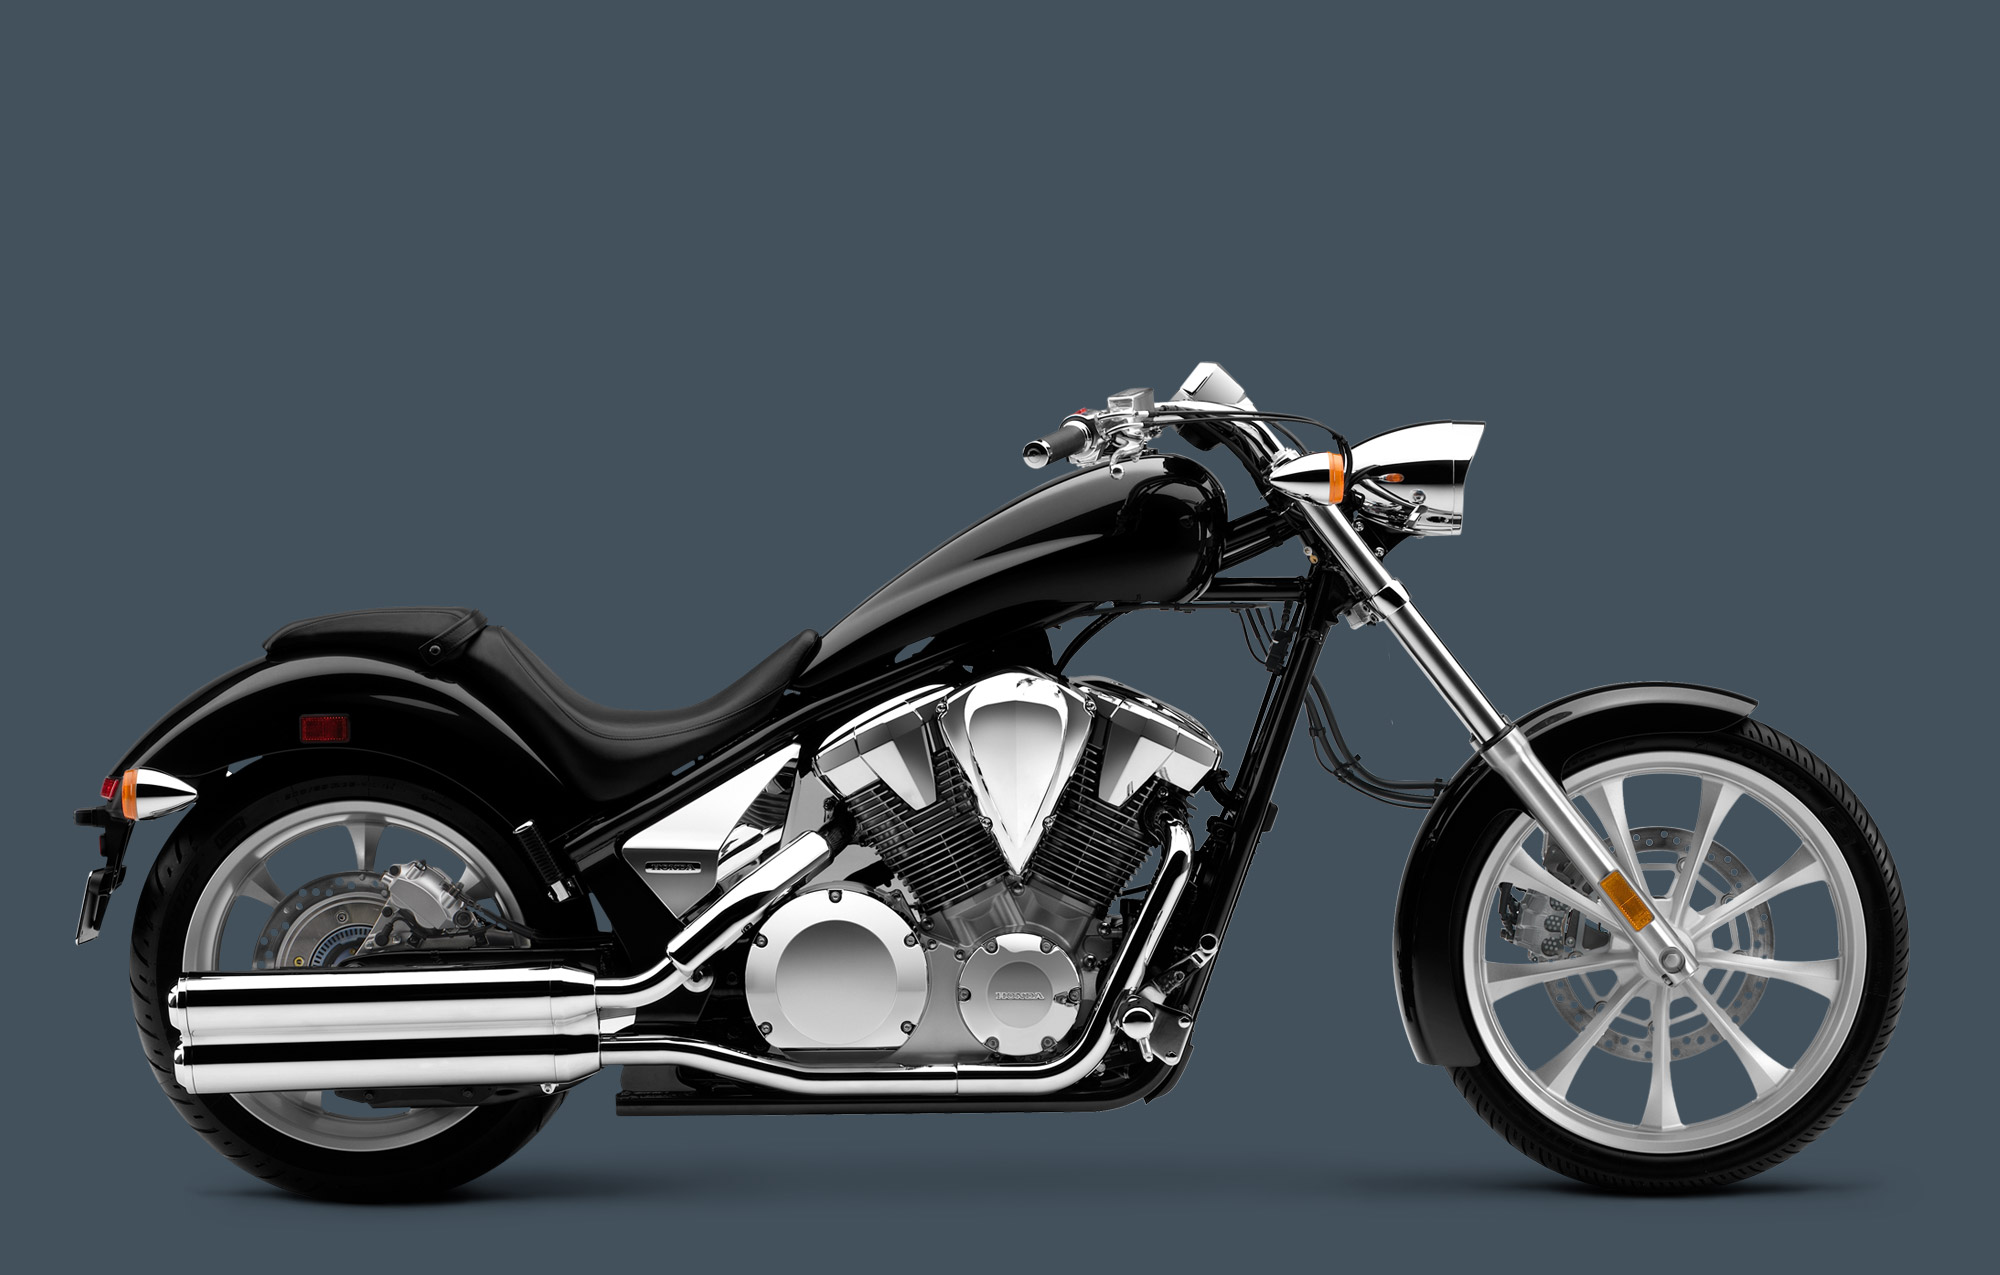 Honda Fury ABS 2010 #1